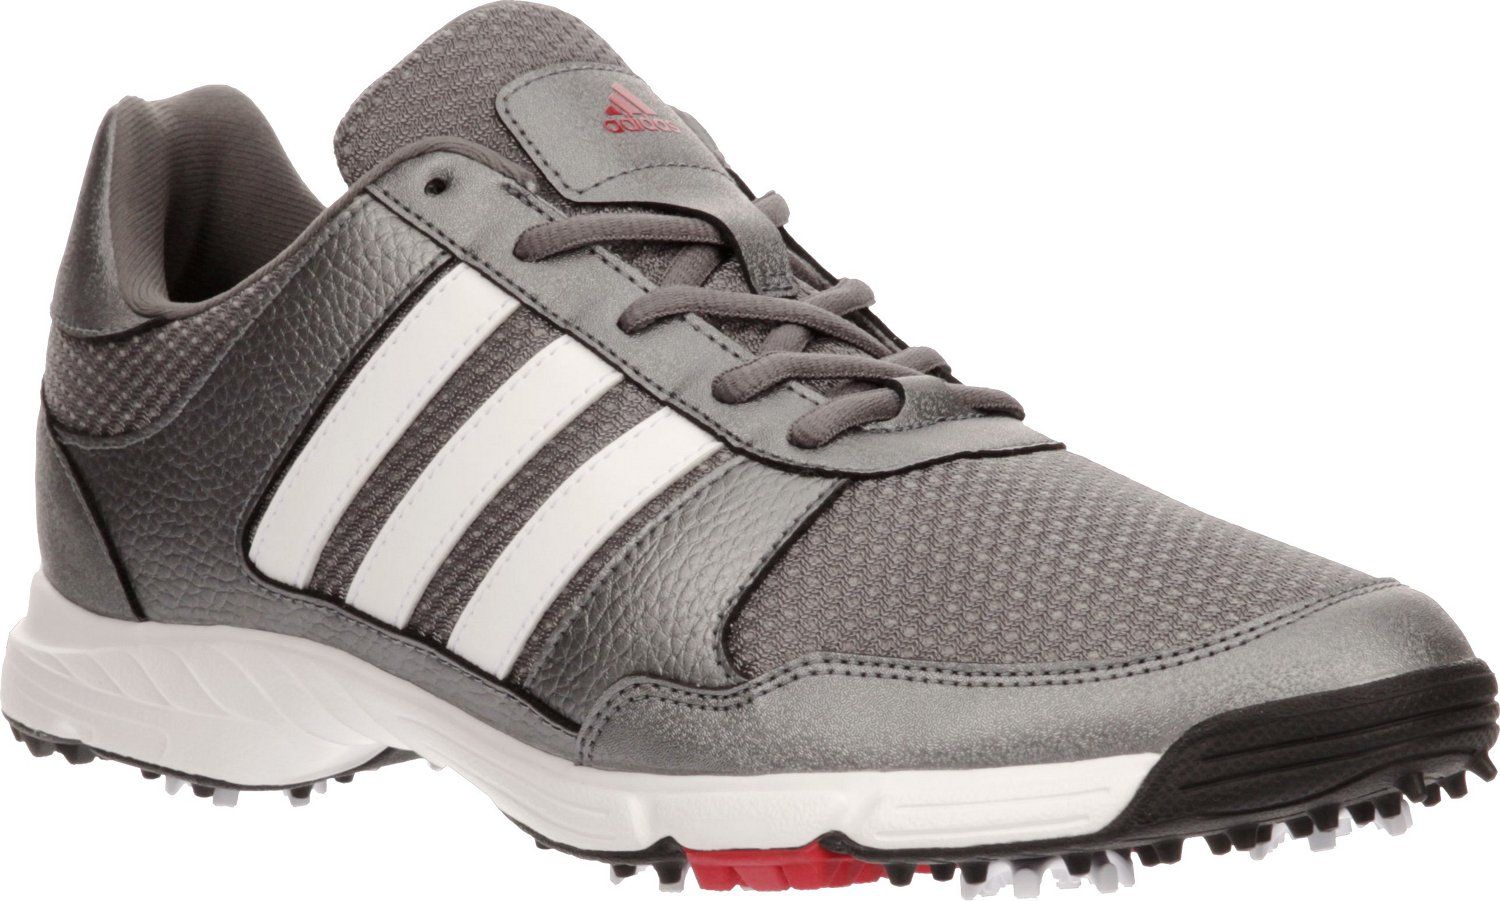 adidas Men's Tech Response Golf Shoes - view number 2